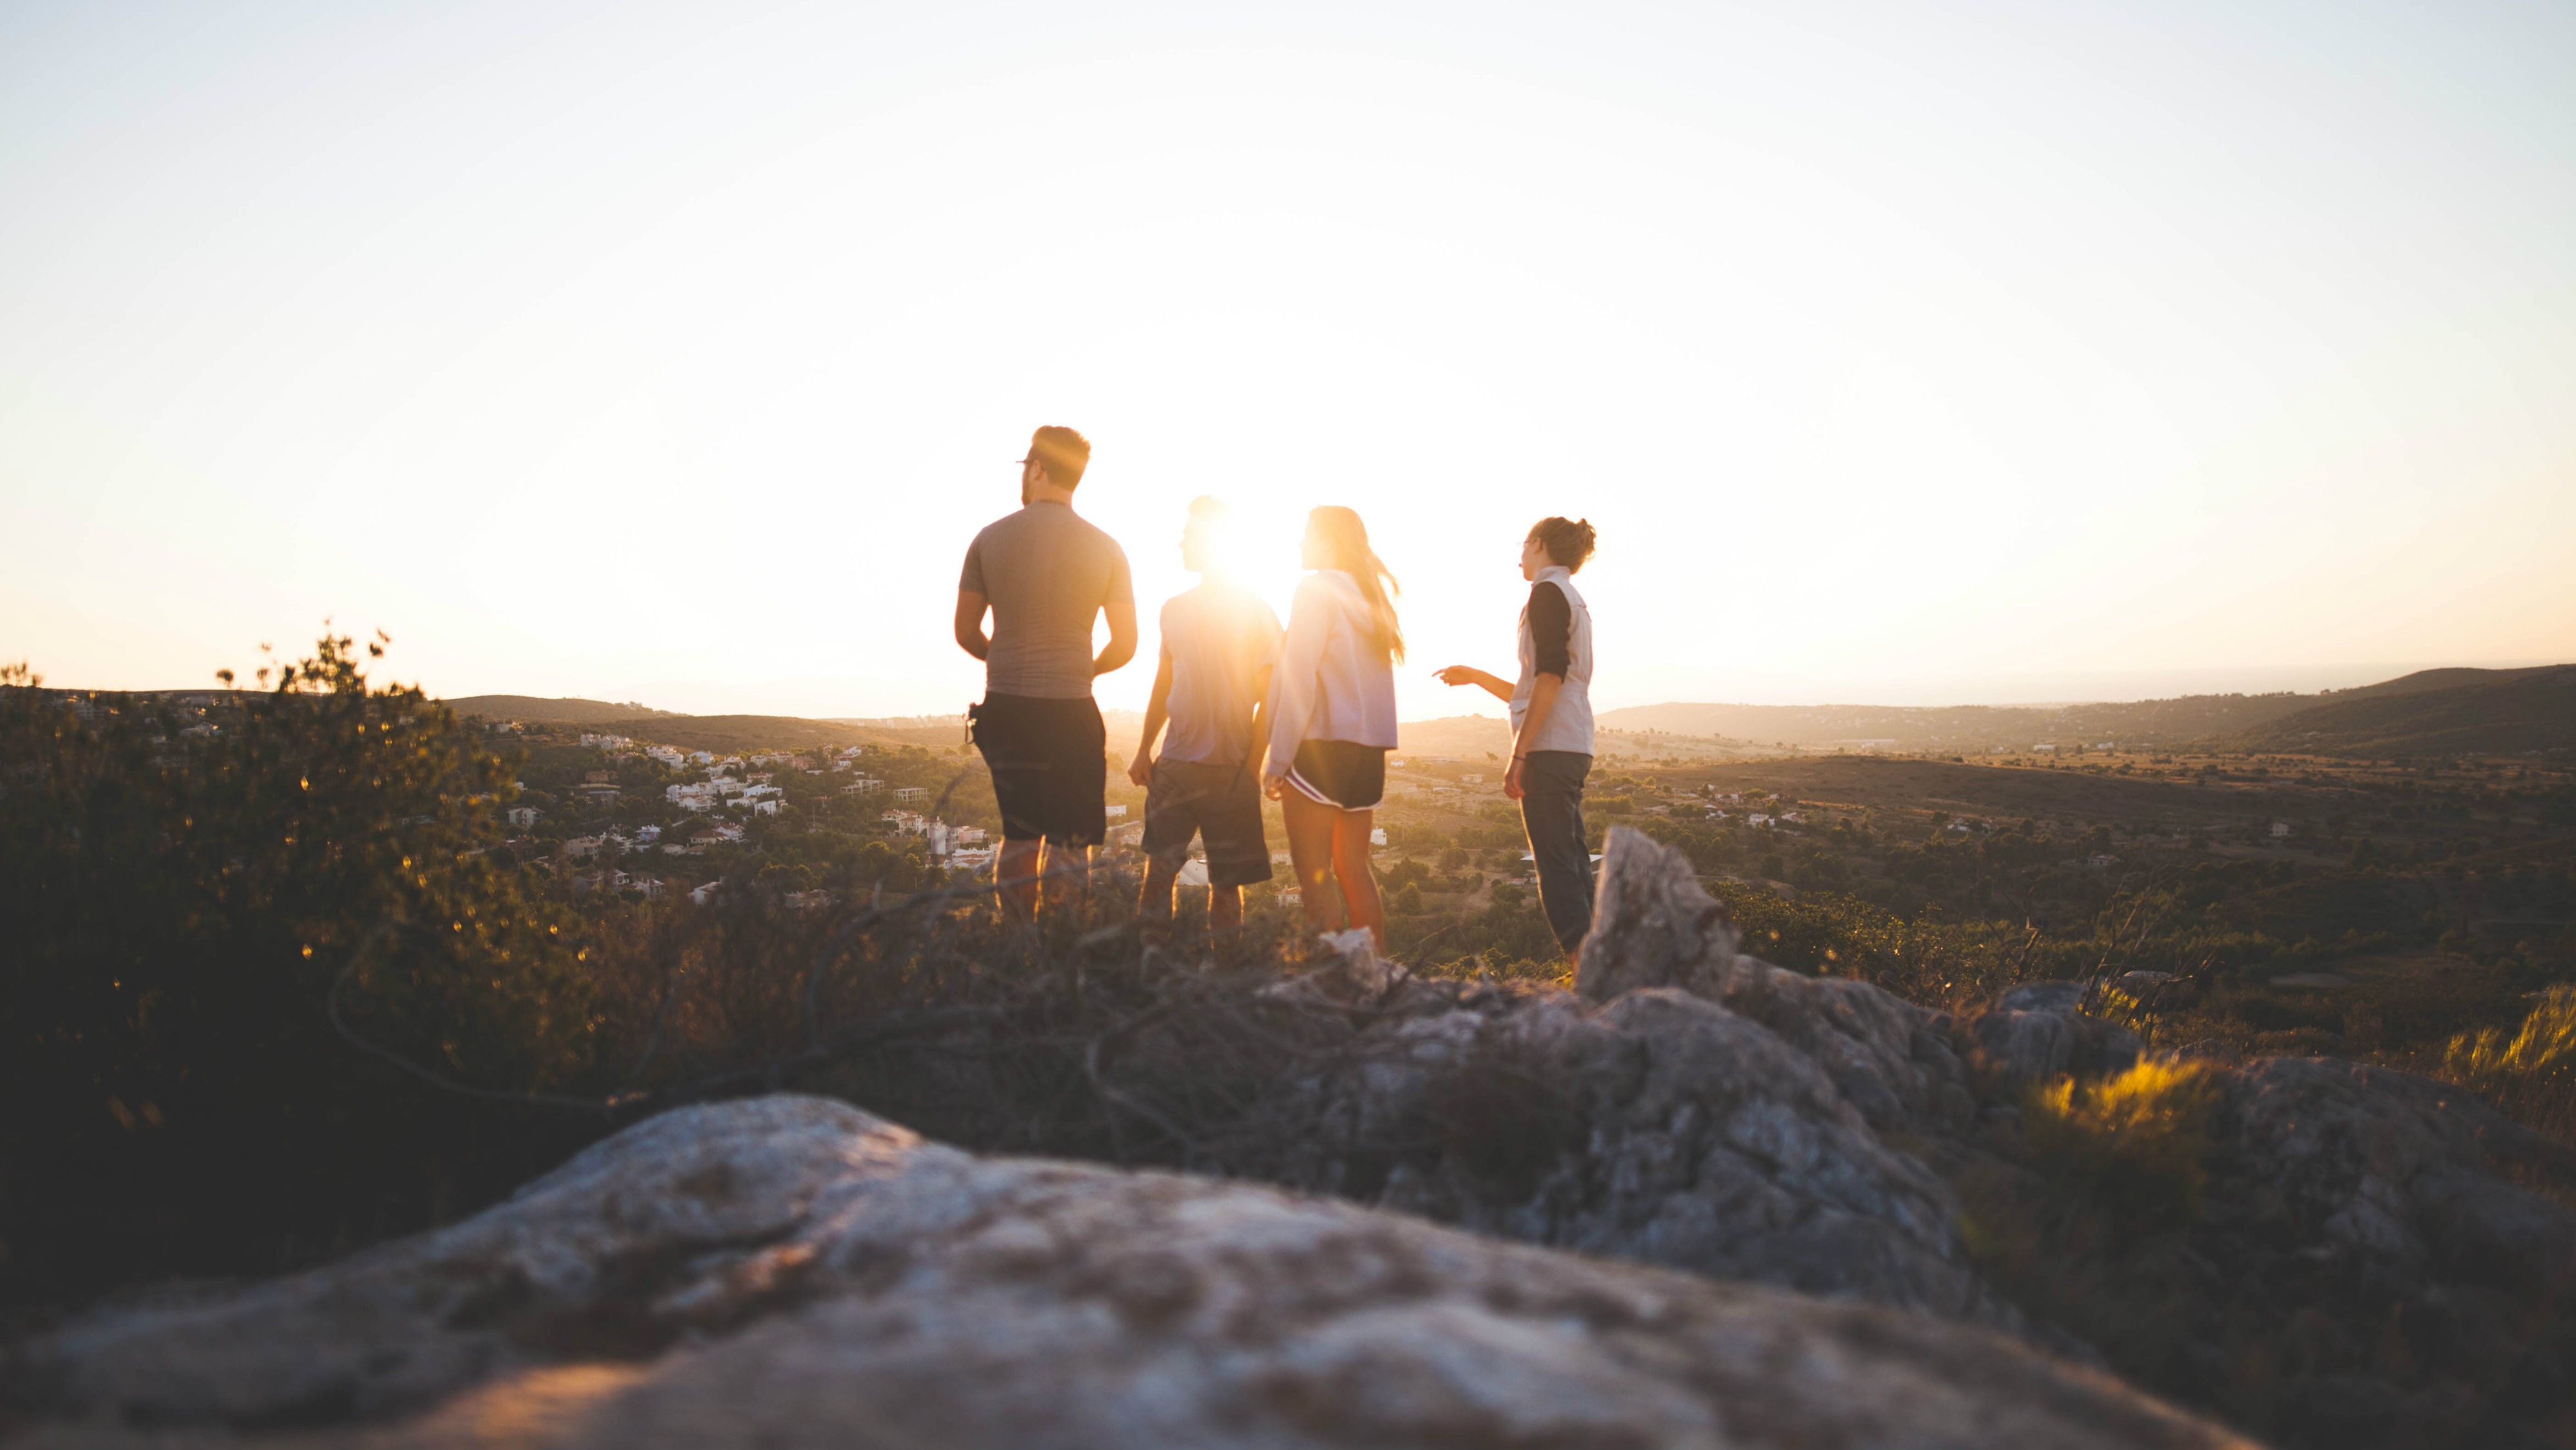 desiring god dating non christian He said-she said: unmarried and vacationing together - cliff young & laura maccorkle - read about christian dating and get advice, help and resources on christian single living.